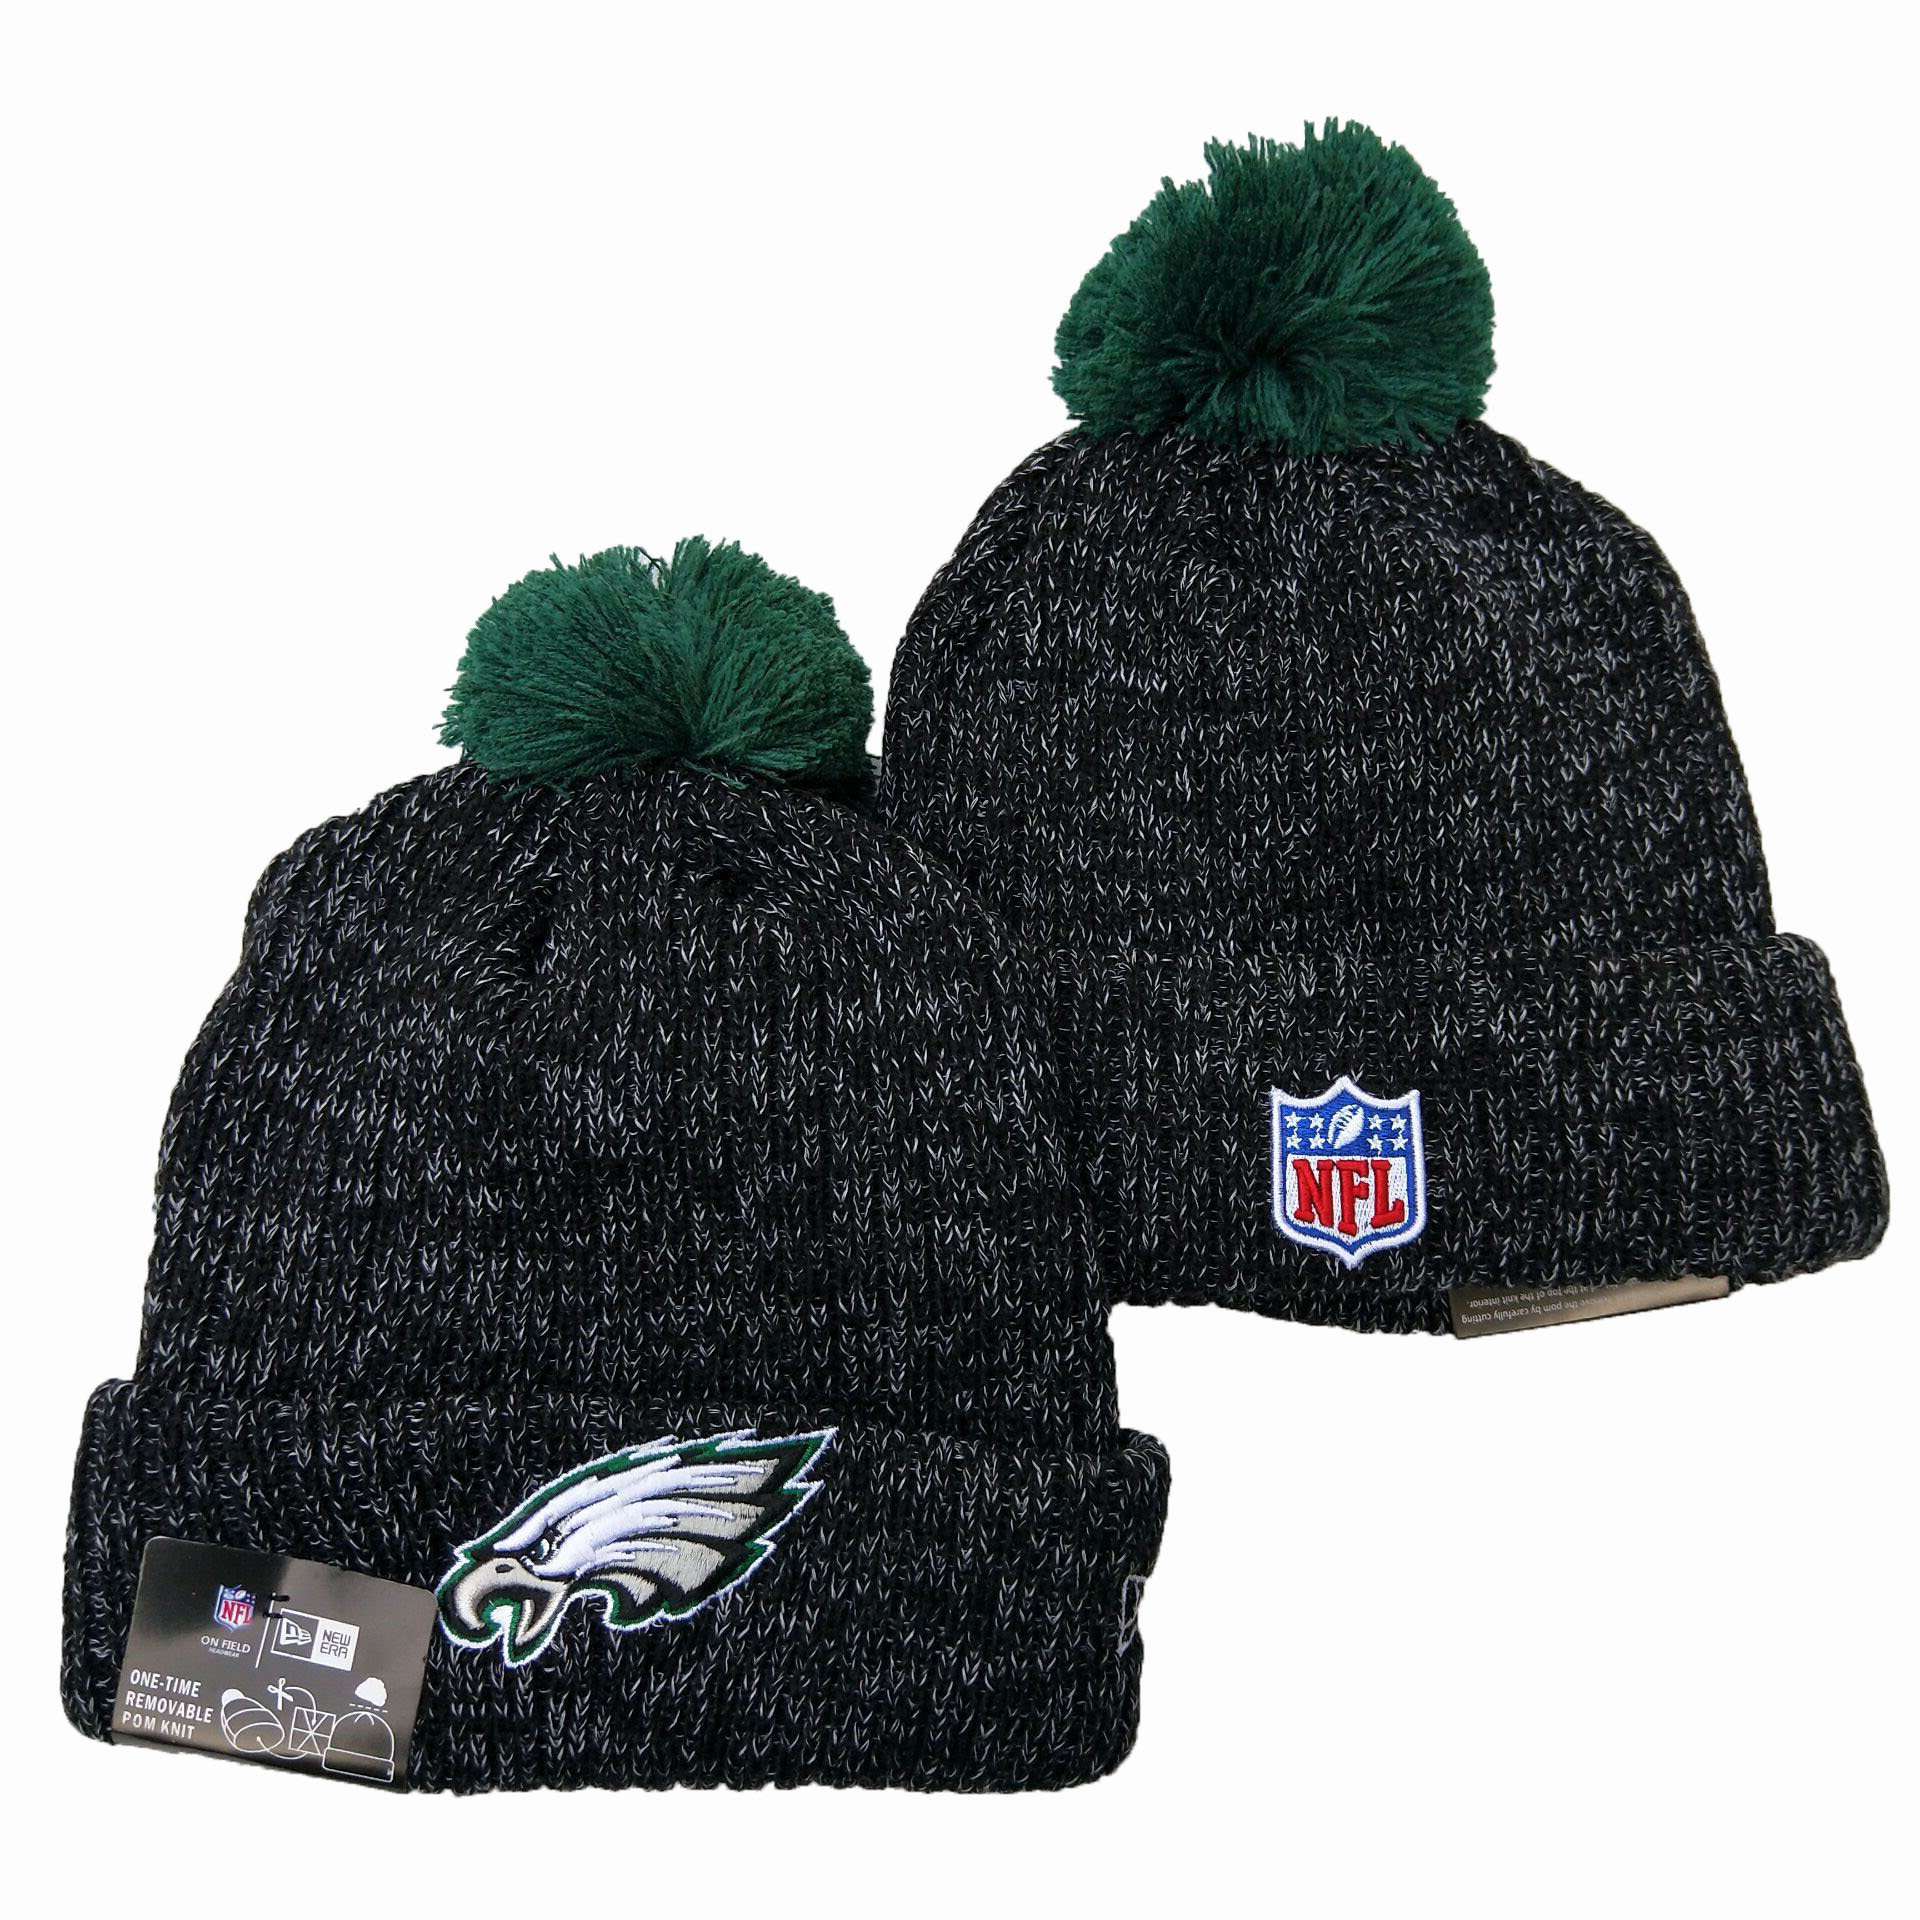 Eagles Team Logo Black Pom Knit Hat YD